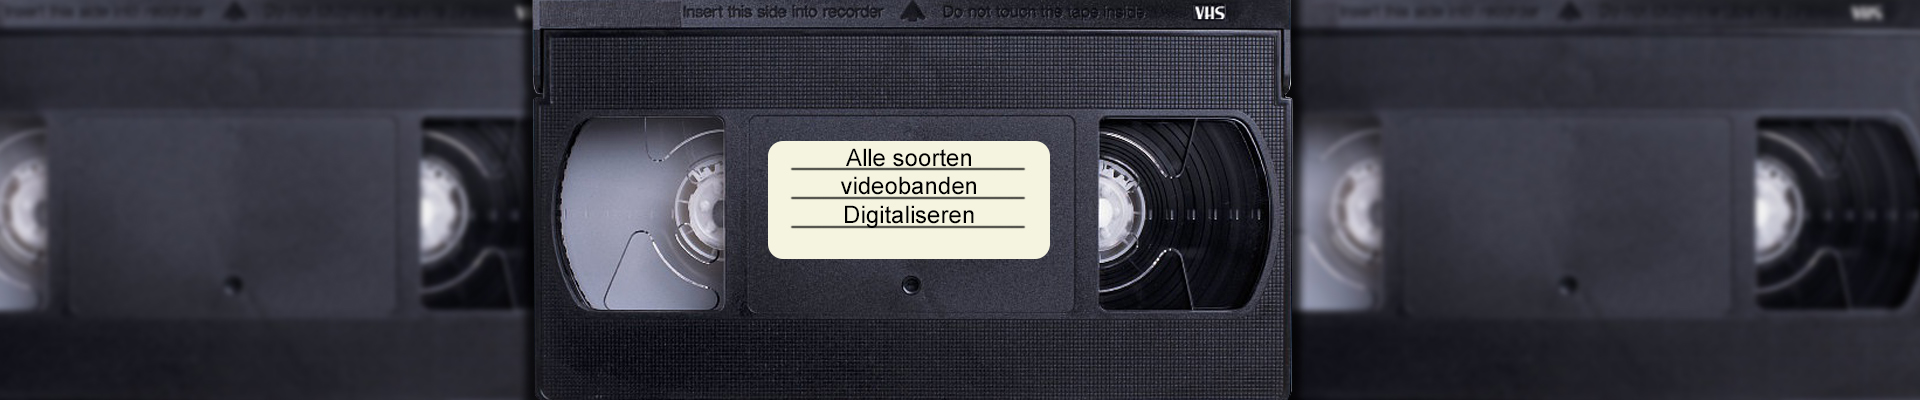 Videodigitaliseren